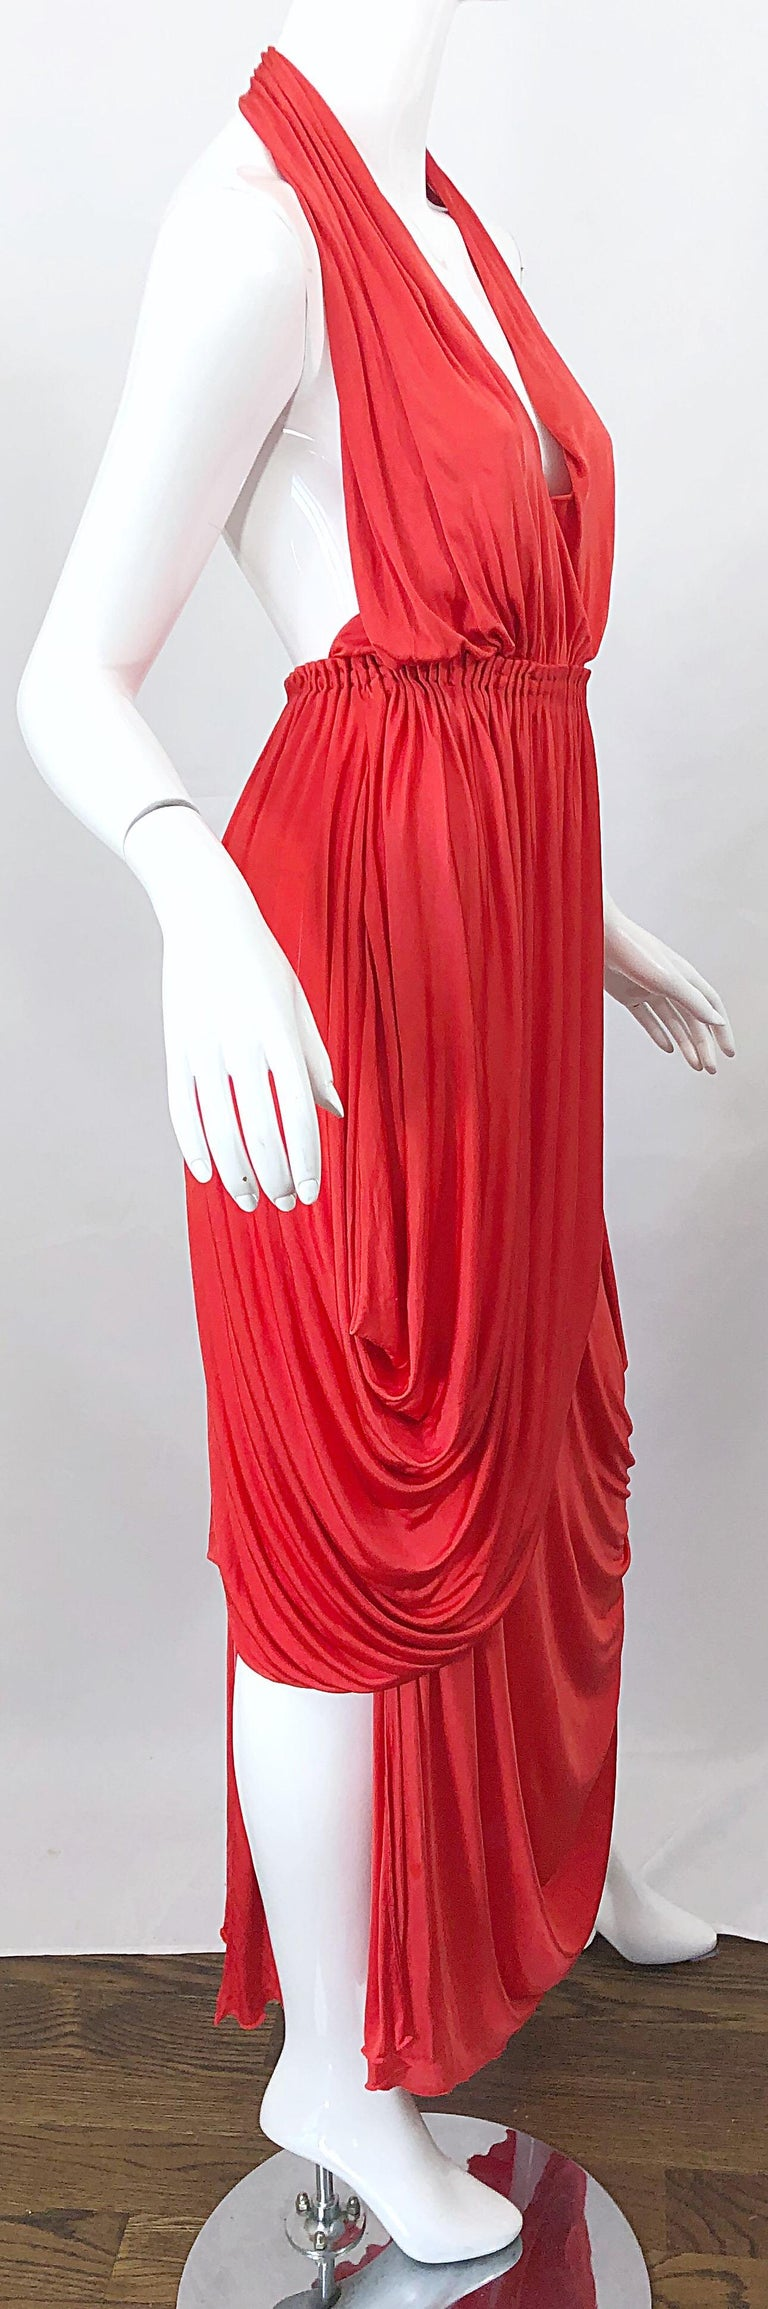 Vintage Halston Coral Silk Jersey Plunging Asymmetrical Hem Backless Gown Dress For Sale 9